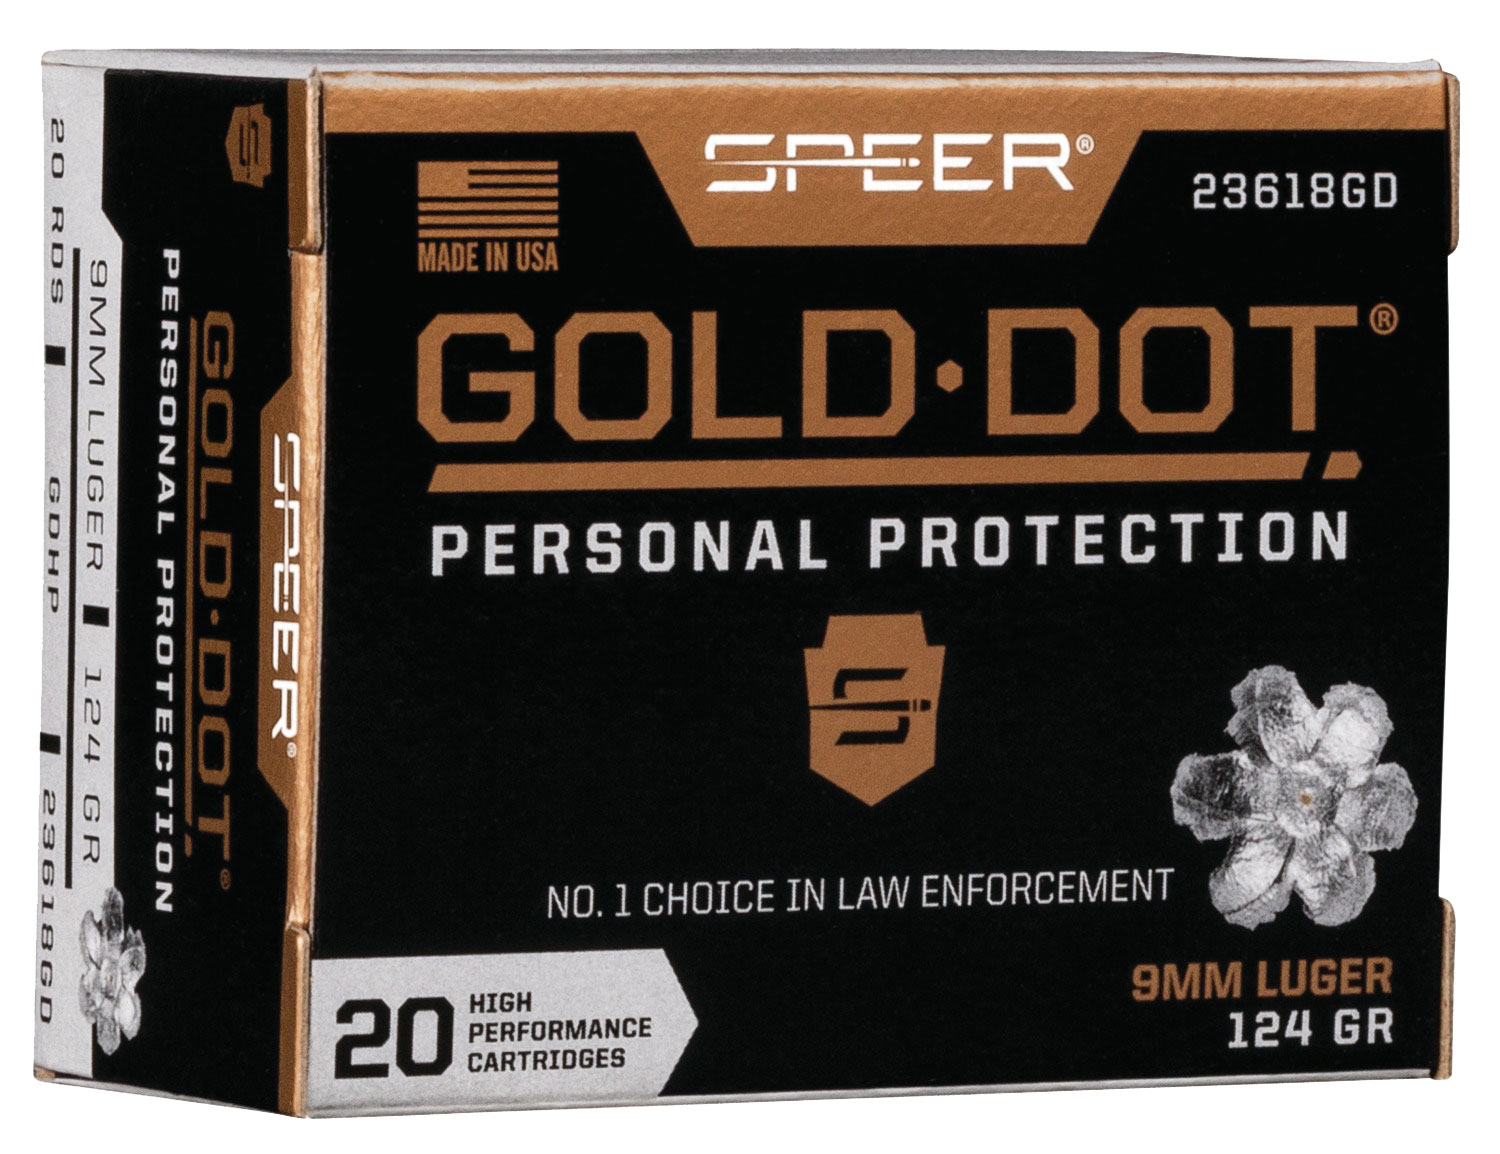 SPR GOLD DOT 9MM 124GR HP 20/200